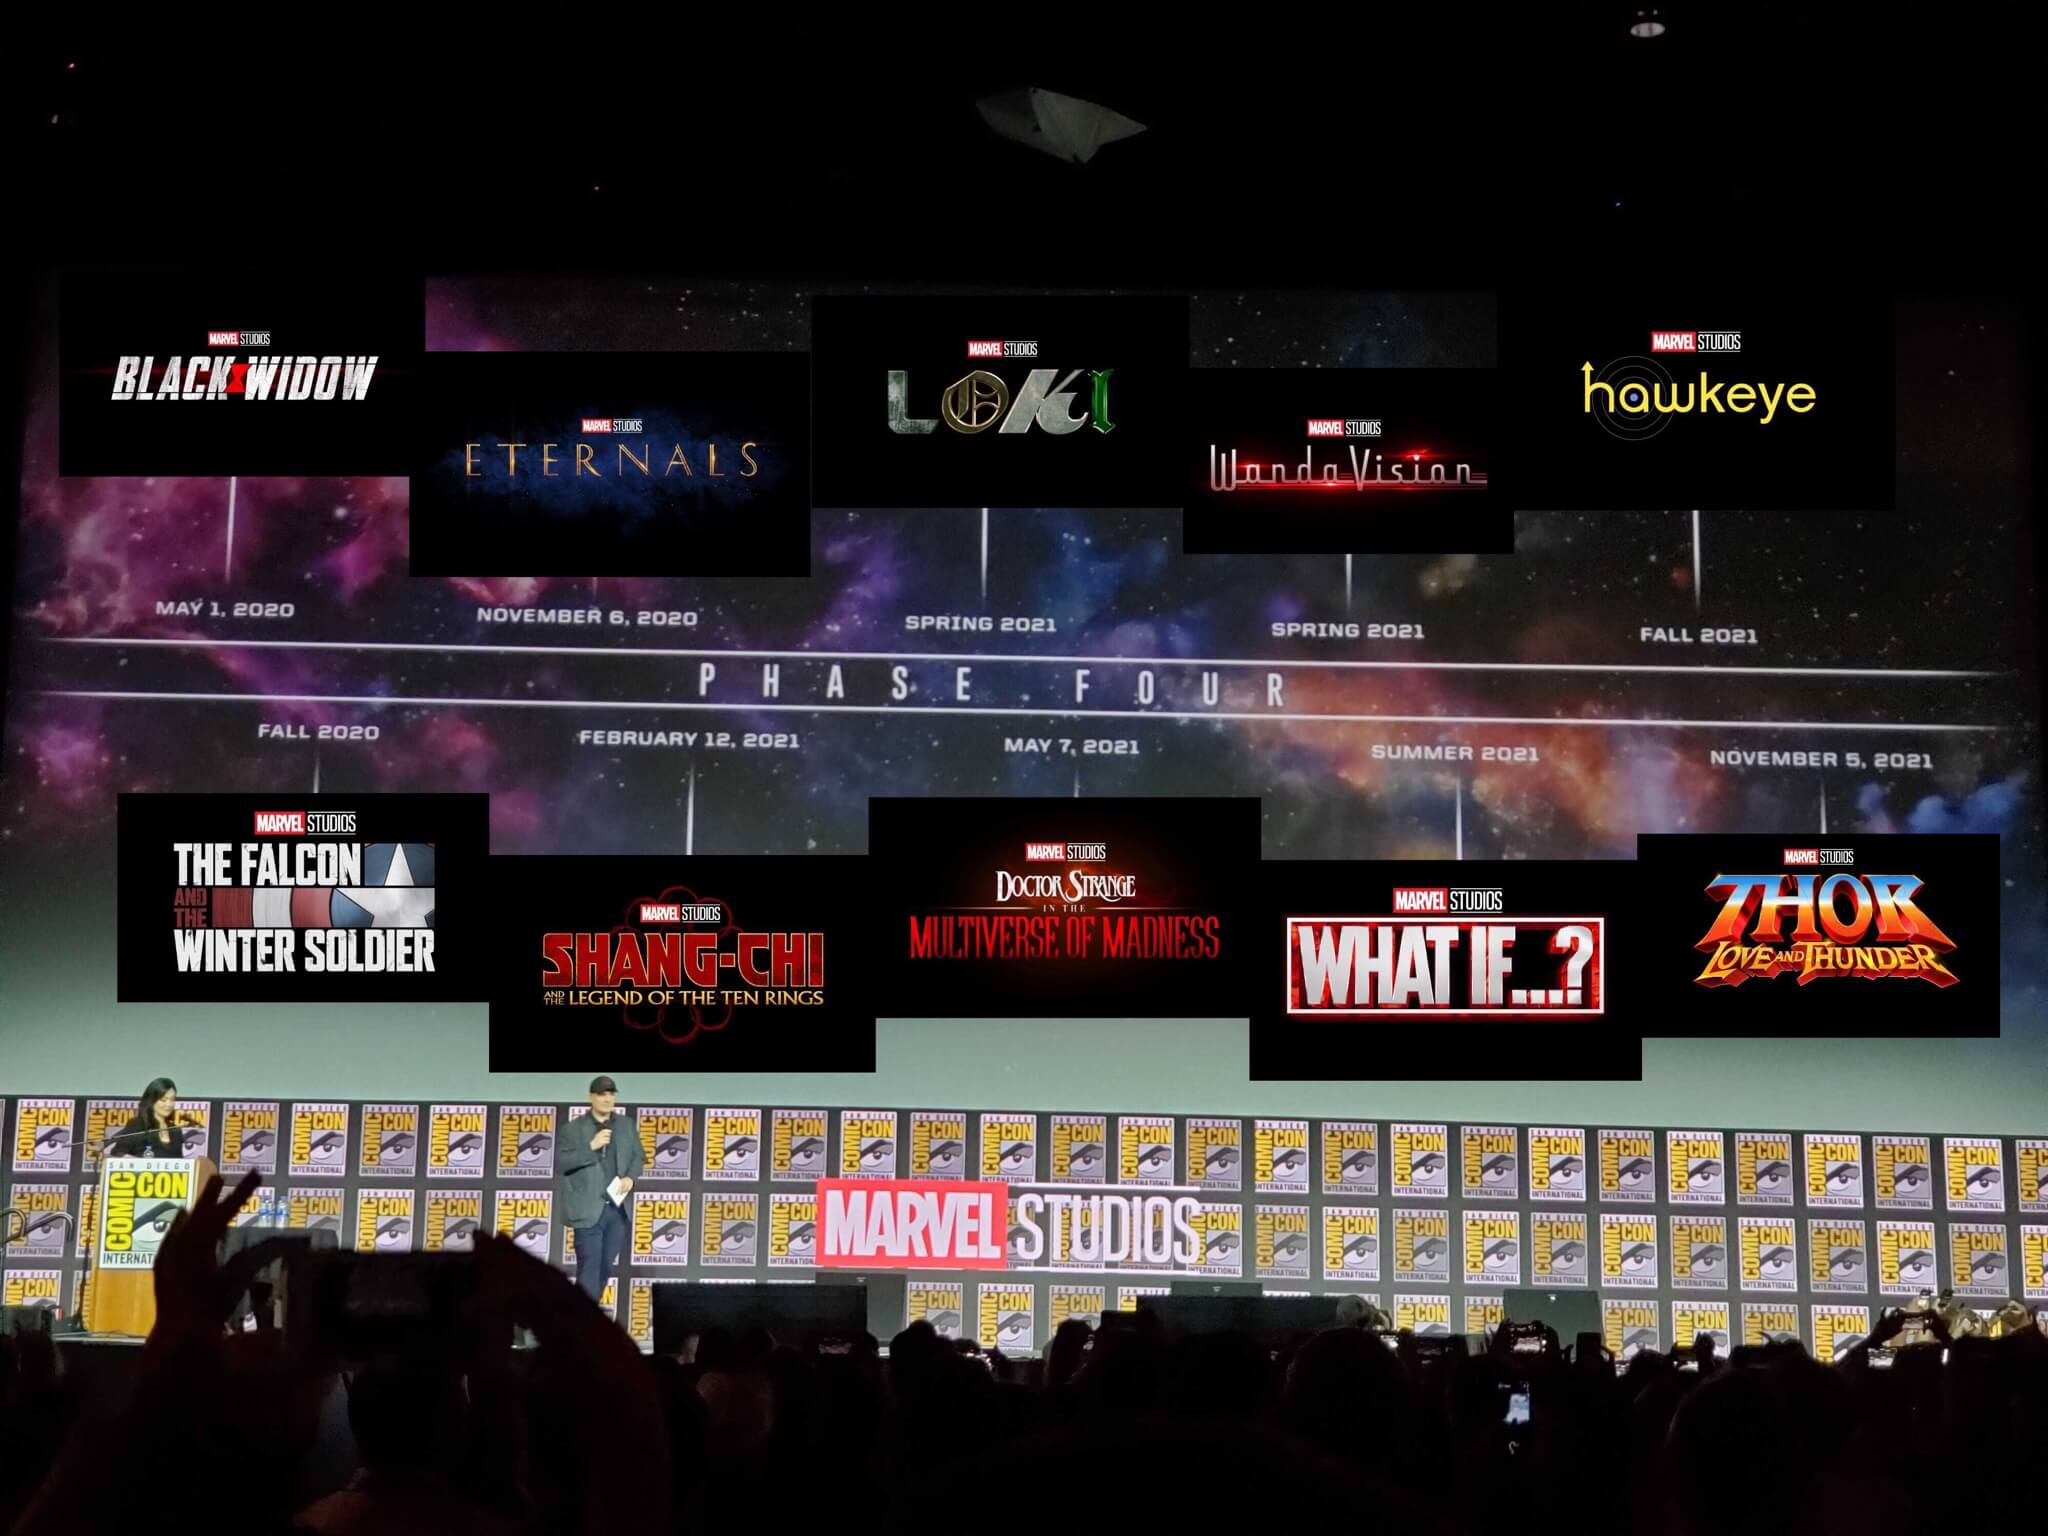 Phase 4 of the MCU